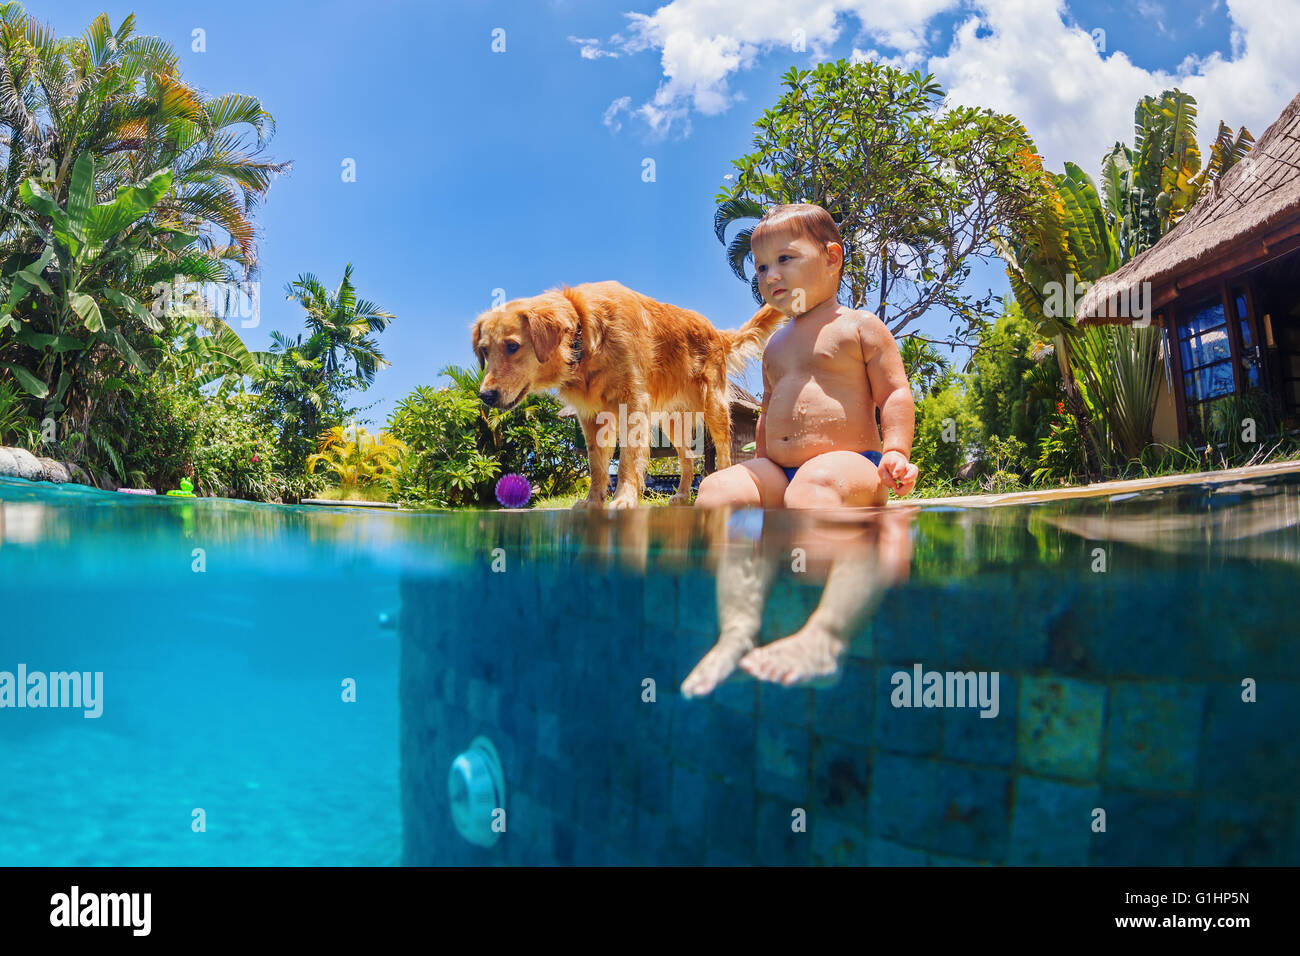 Funny underwater photo of little baby and dog swimmig in blue outdoor swimming pool. - Stock Image